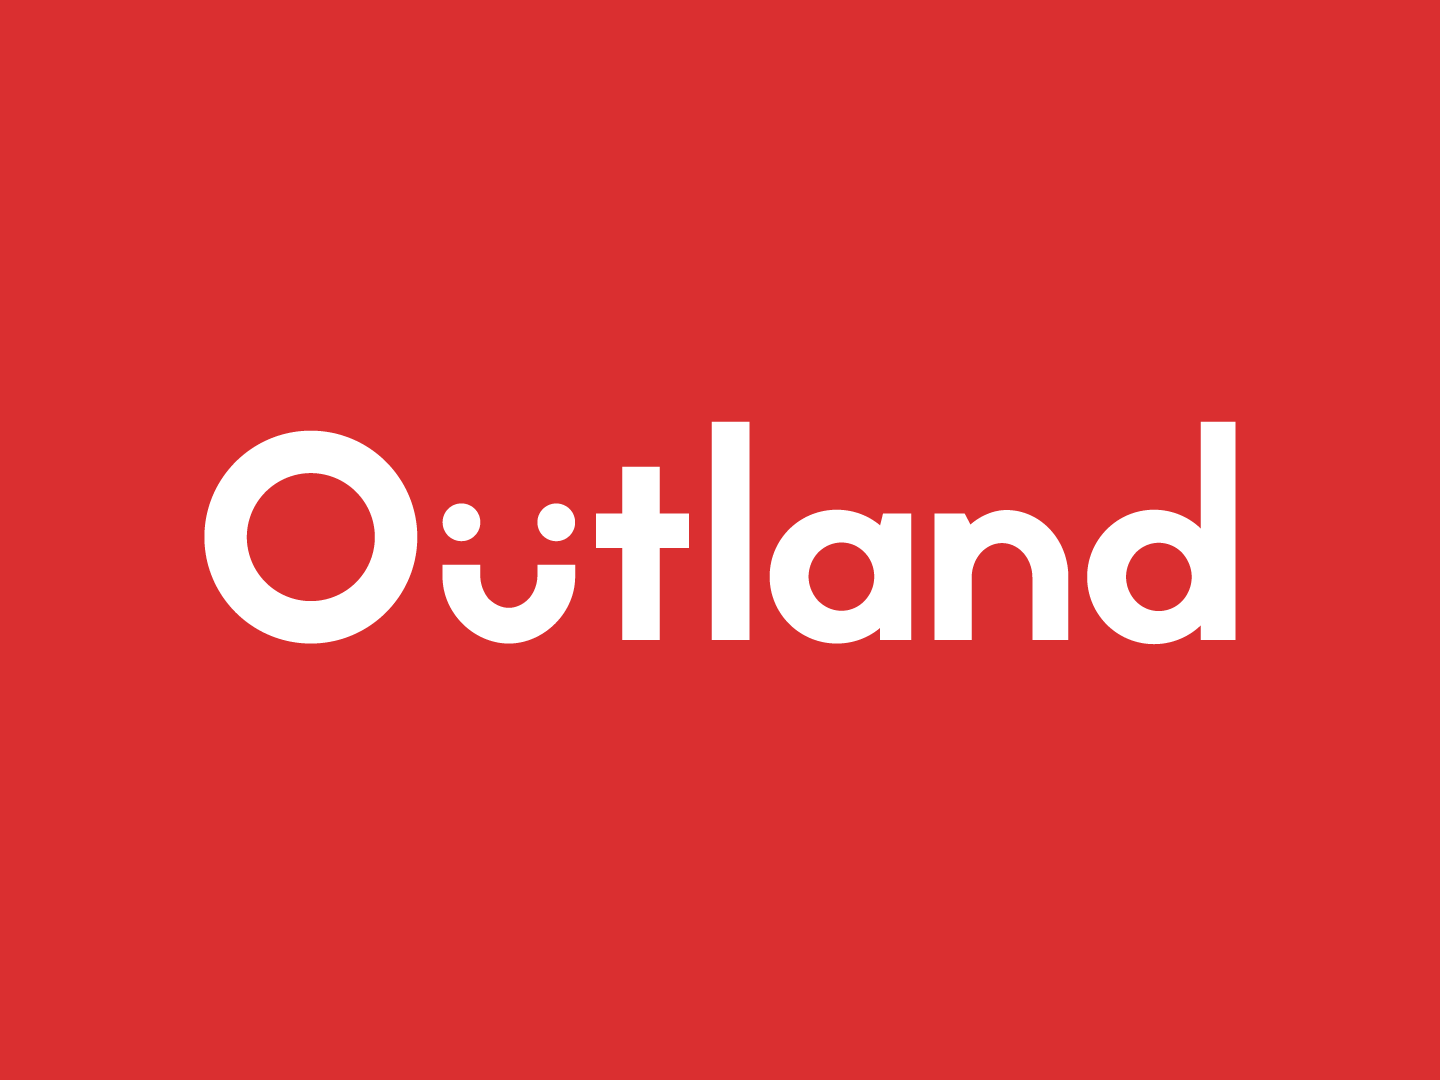 Outland Red typography design logo inspiration brand designer visual designer branding design logo graphics designer branding designer visual identity designer logomark branding brand identity identity designer logotype logos logo designer logo design brand identity designer